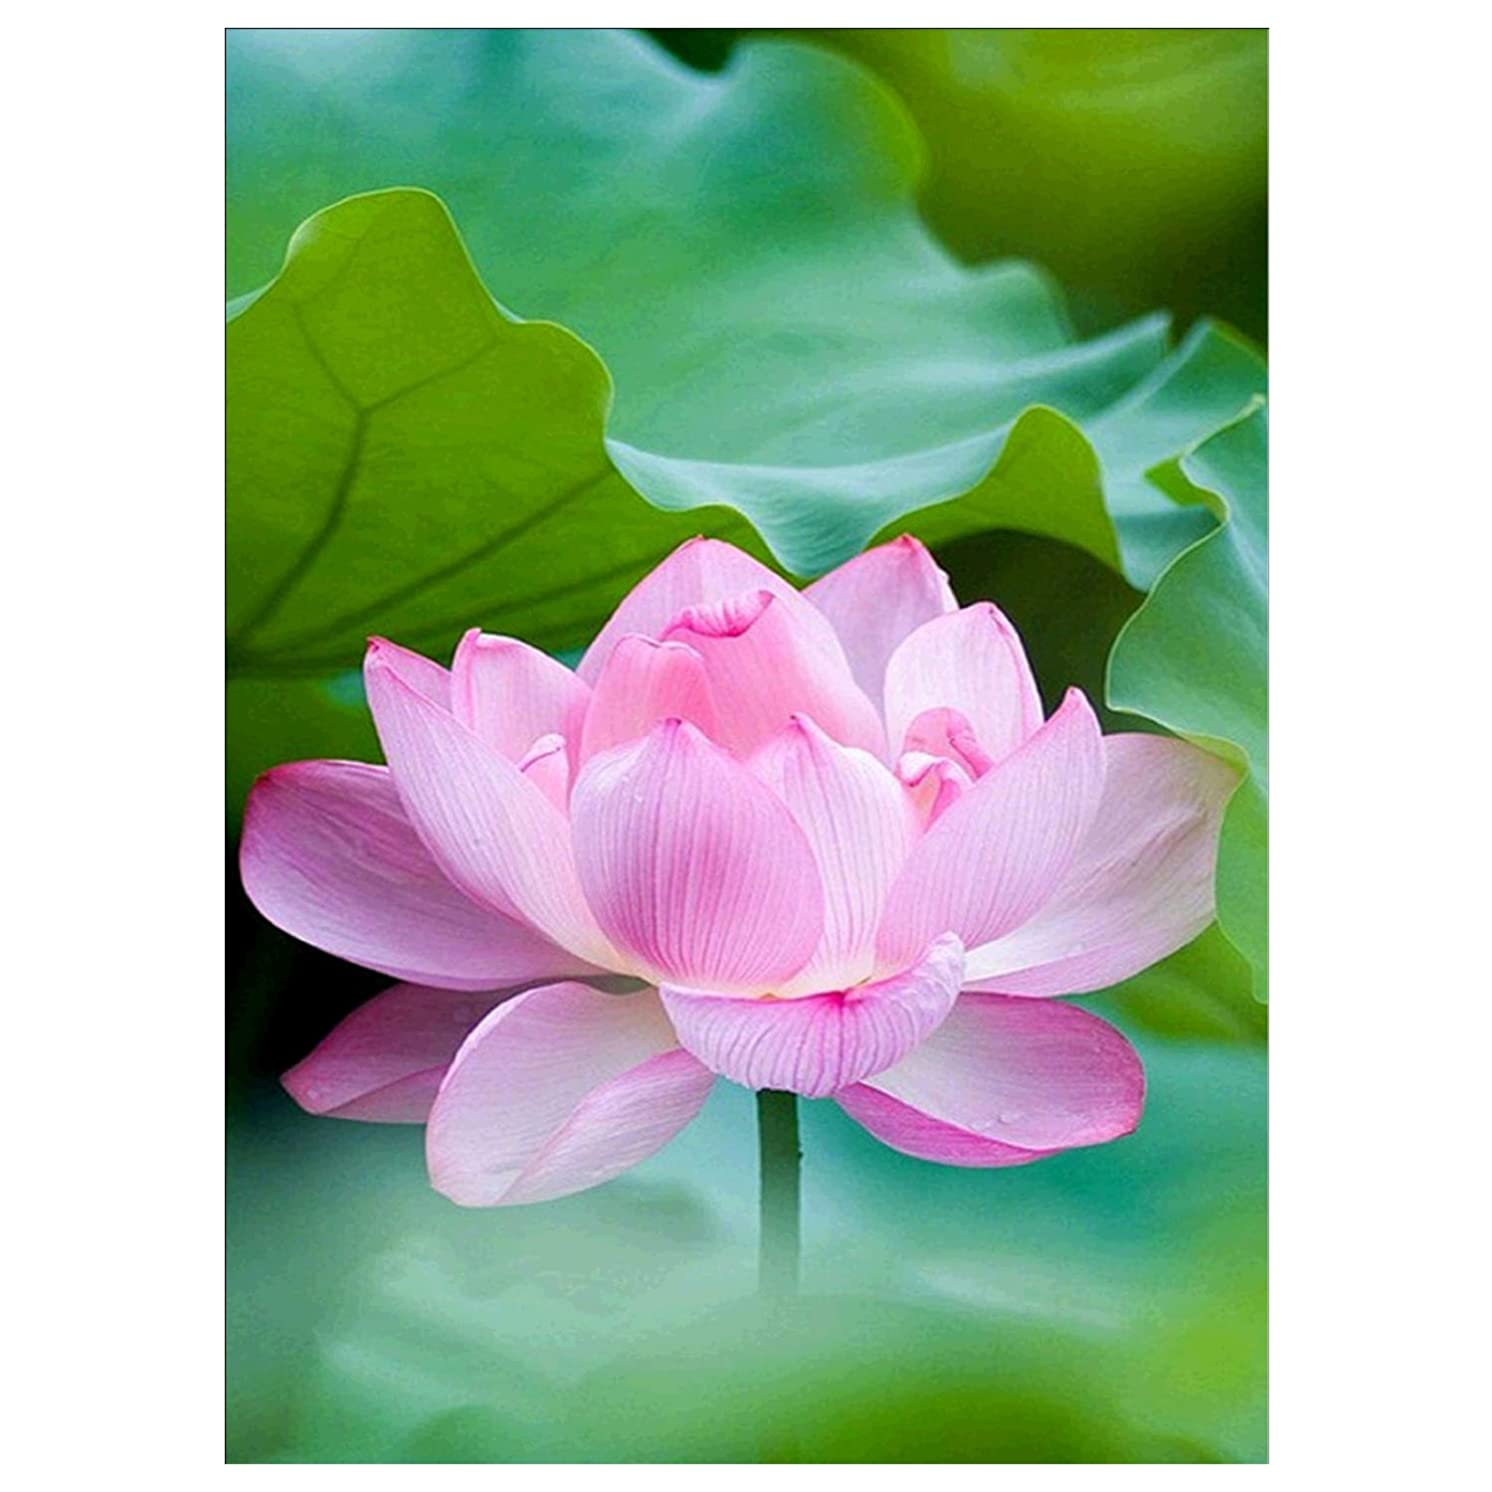 DIY 5D Diamond Painting by Number Kit, Lotus Flower Square Diamond Embroidery Cross Stitch Arts Craft Supply Canvas Wall Decor